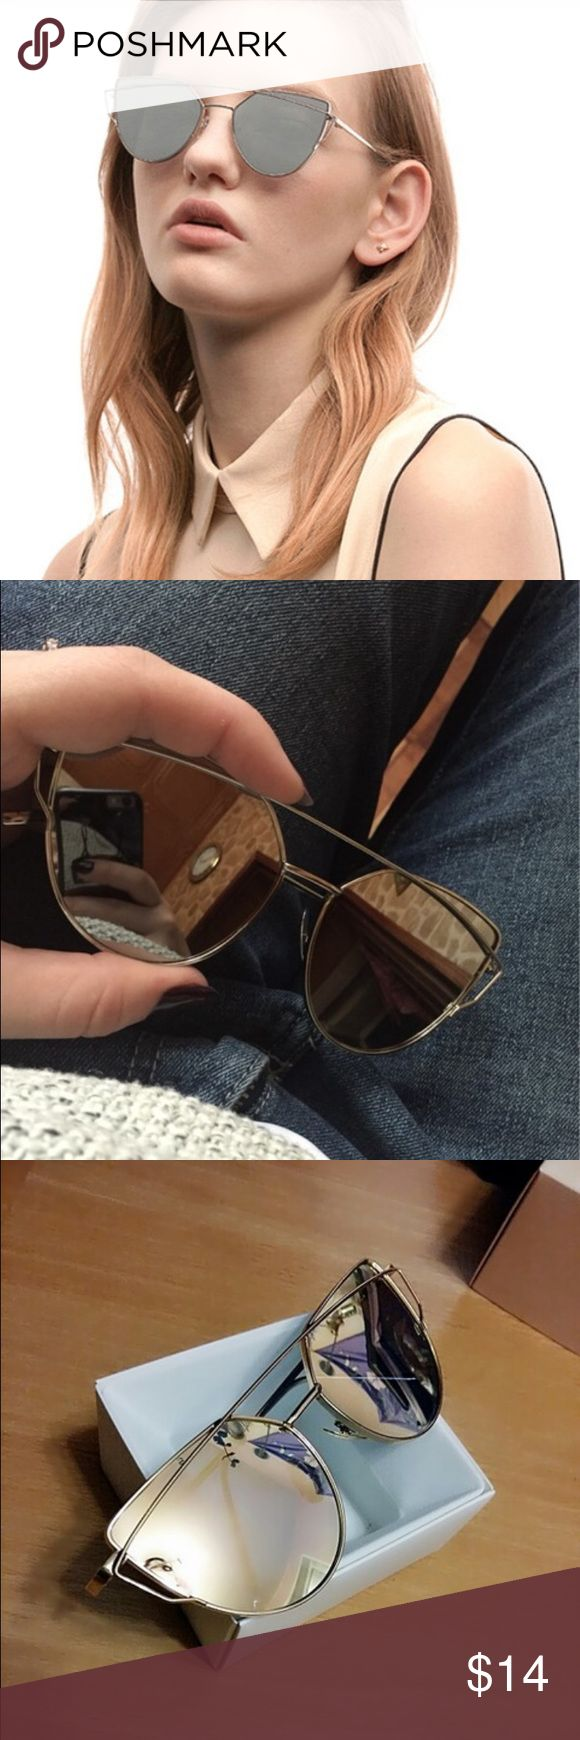 Women's Mirrored Fashionable Sunglasses Women's Fashionable Mirrored Sunglasses. Silver lining and silver frames. These are a show stopper! Accessories Sunglasses